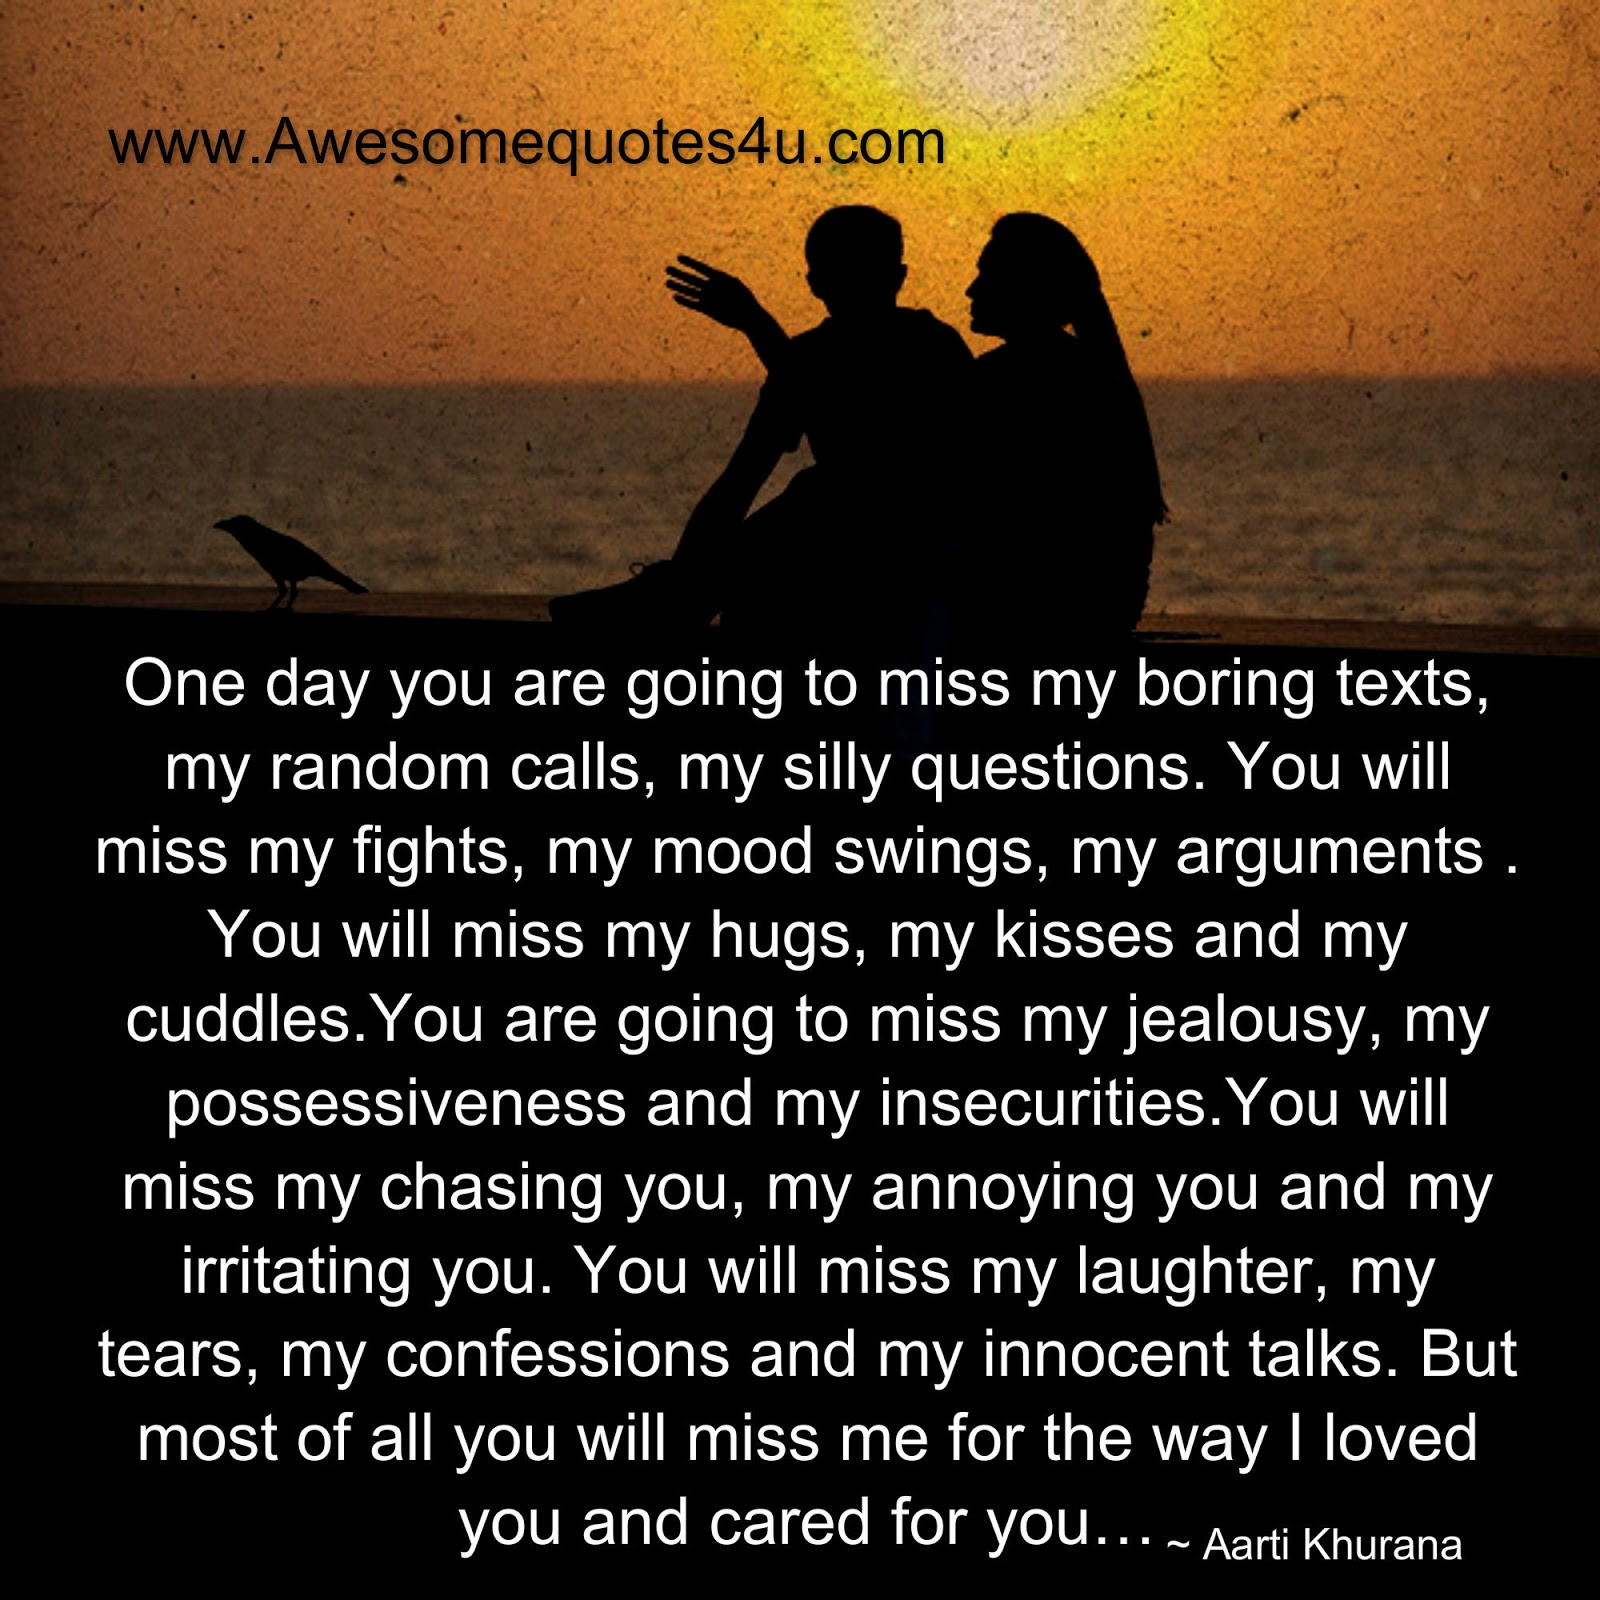 Awesome Quotes You Will Miss Me